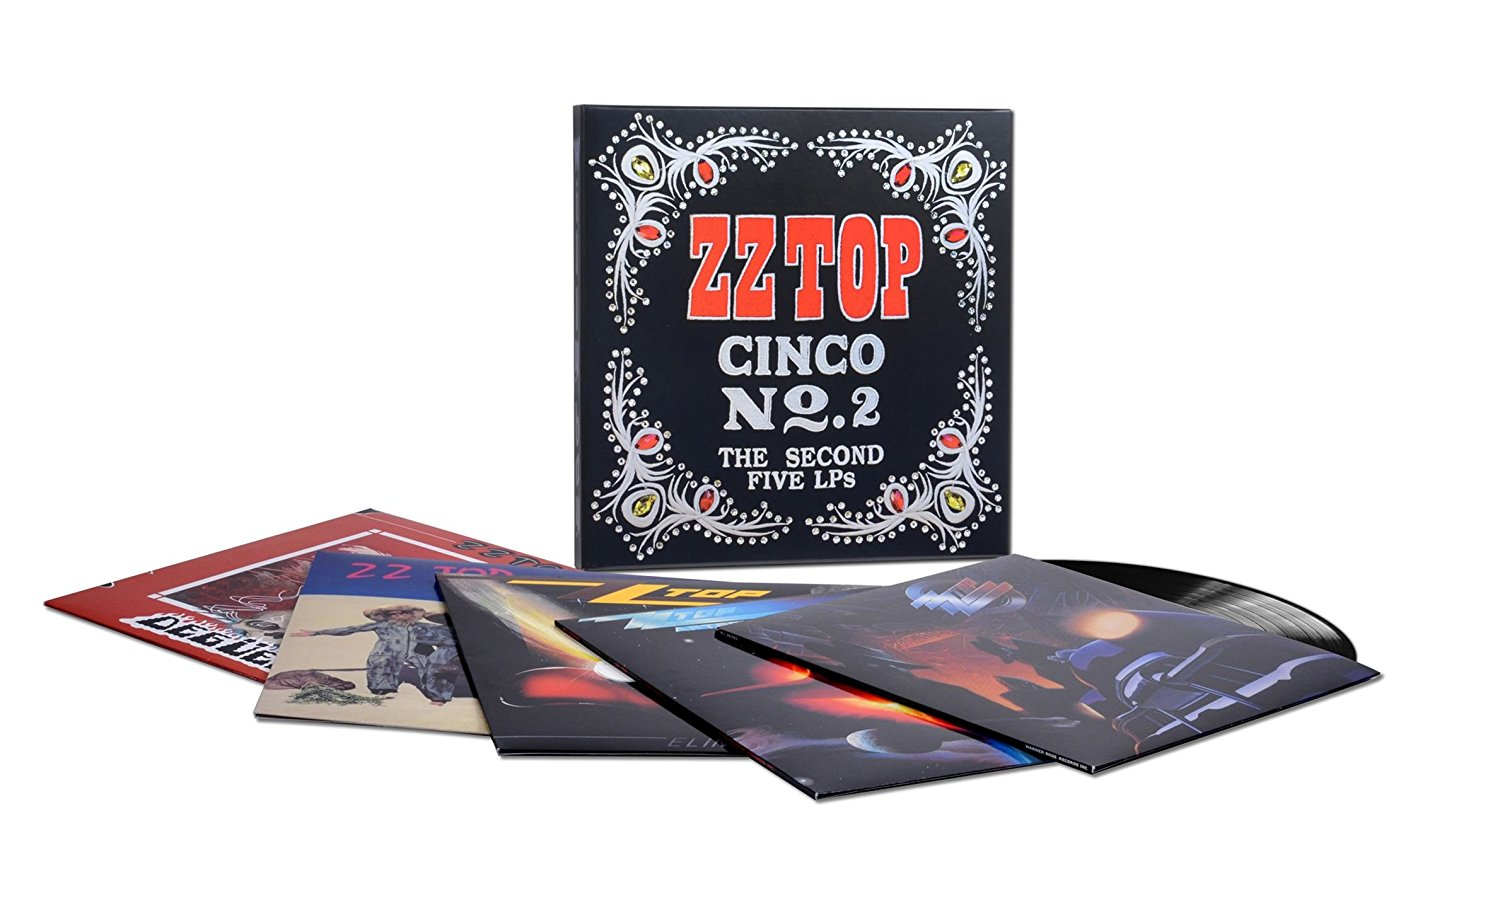 ZZ Top - Cinco No. 2: The Second Five LPS [LP Box Set]